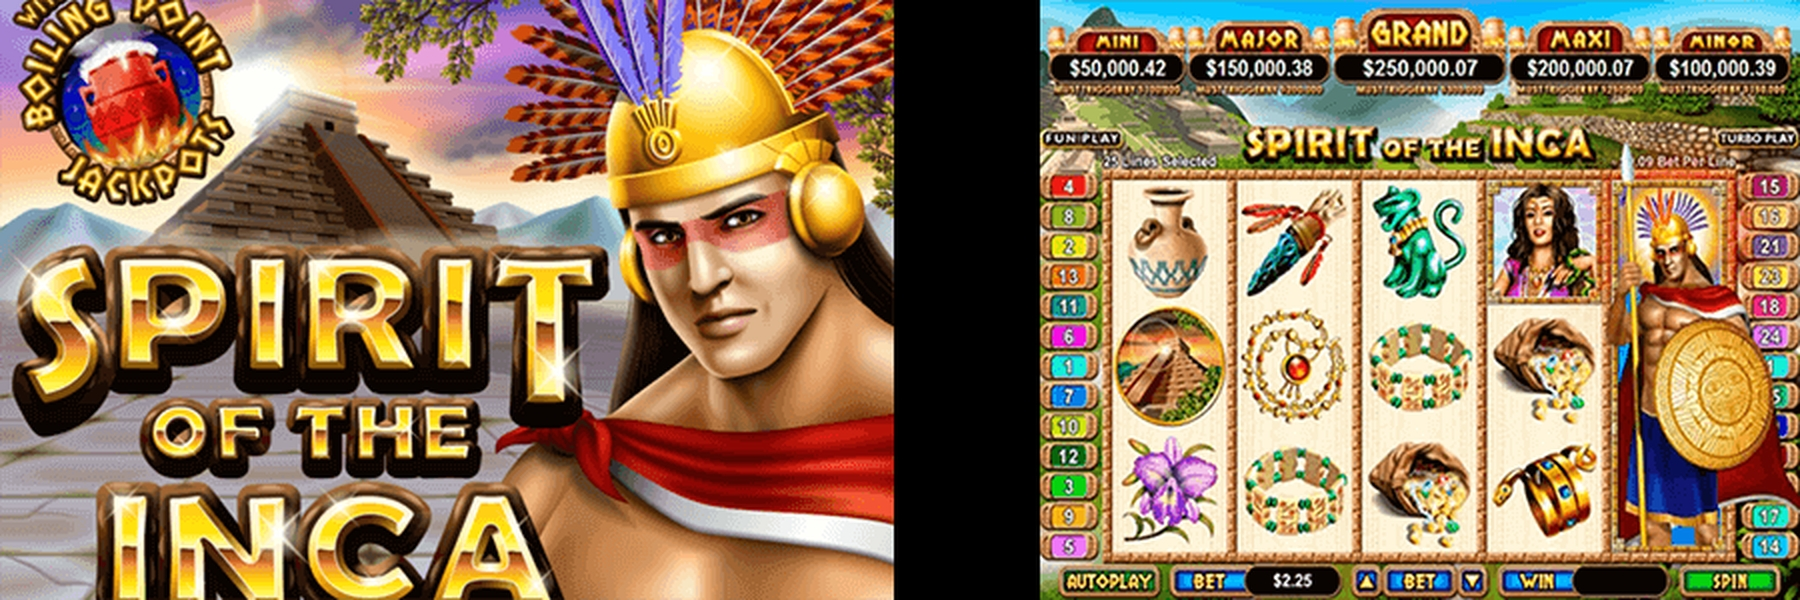 The Spirit of the Inca Online Slot Demo Game by Real Time Gaming